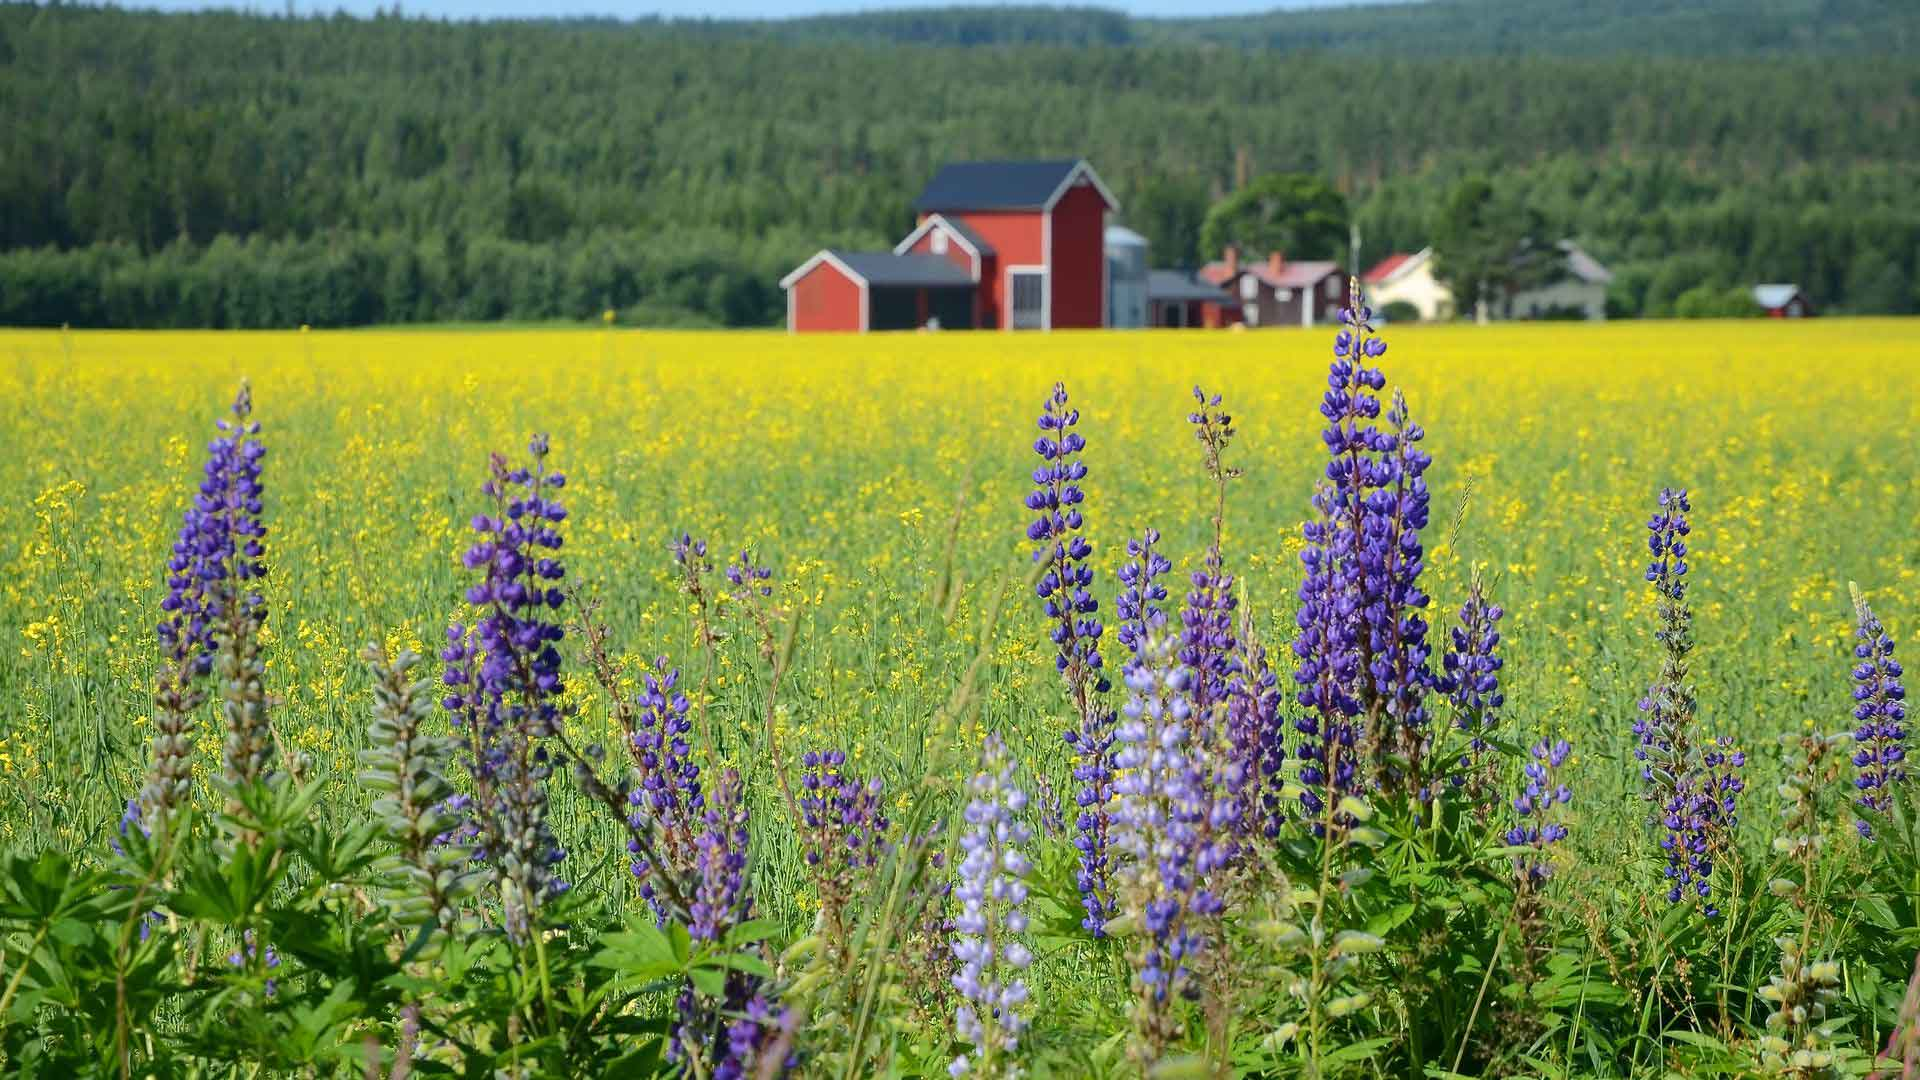 Countryside and flowers in Sweden